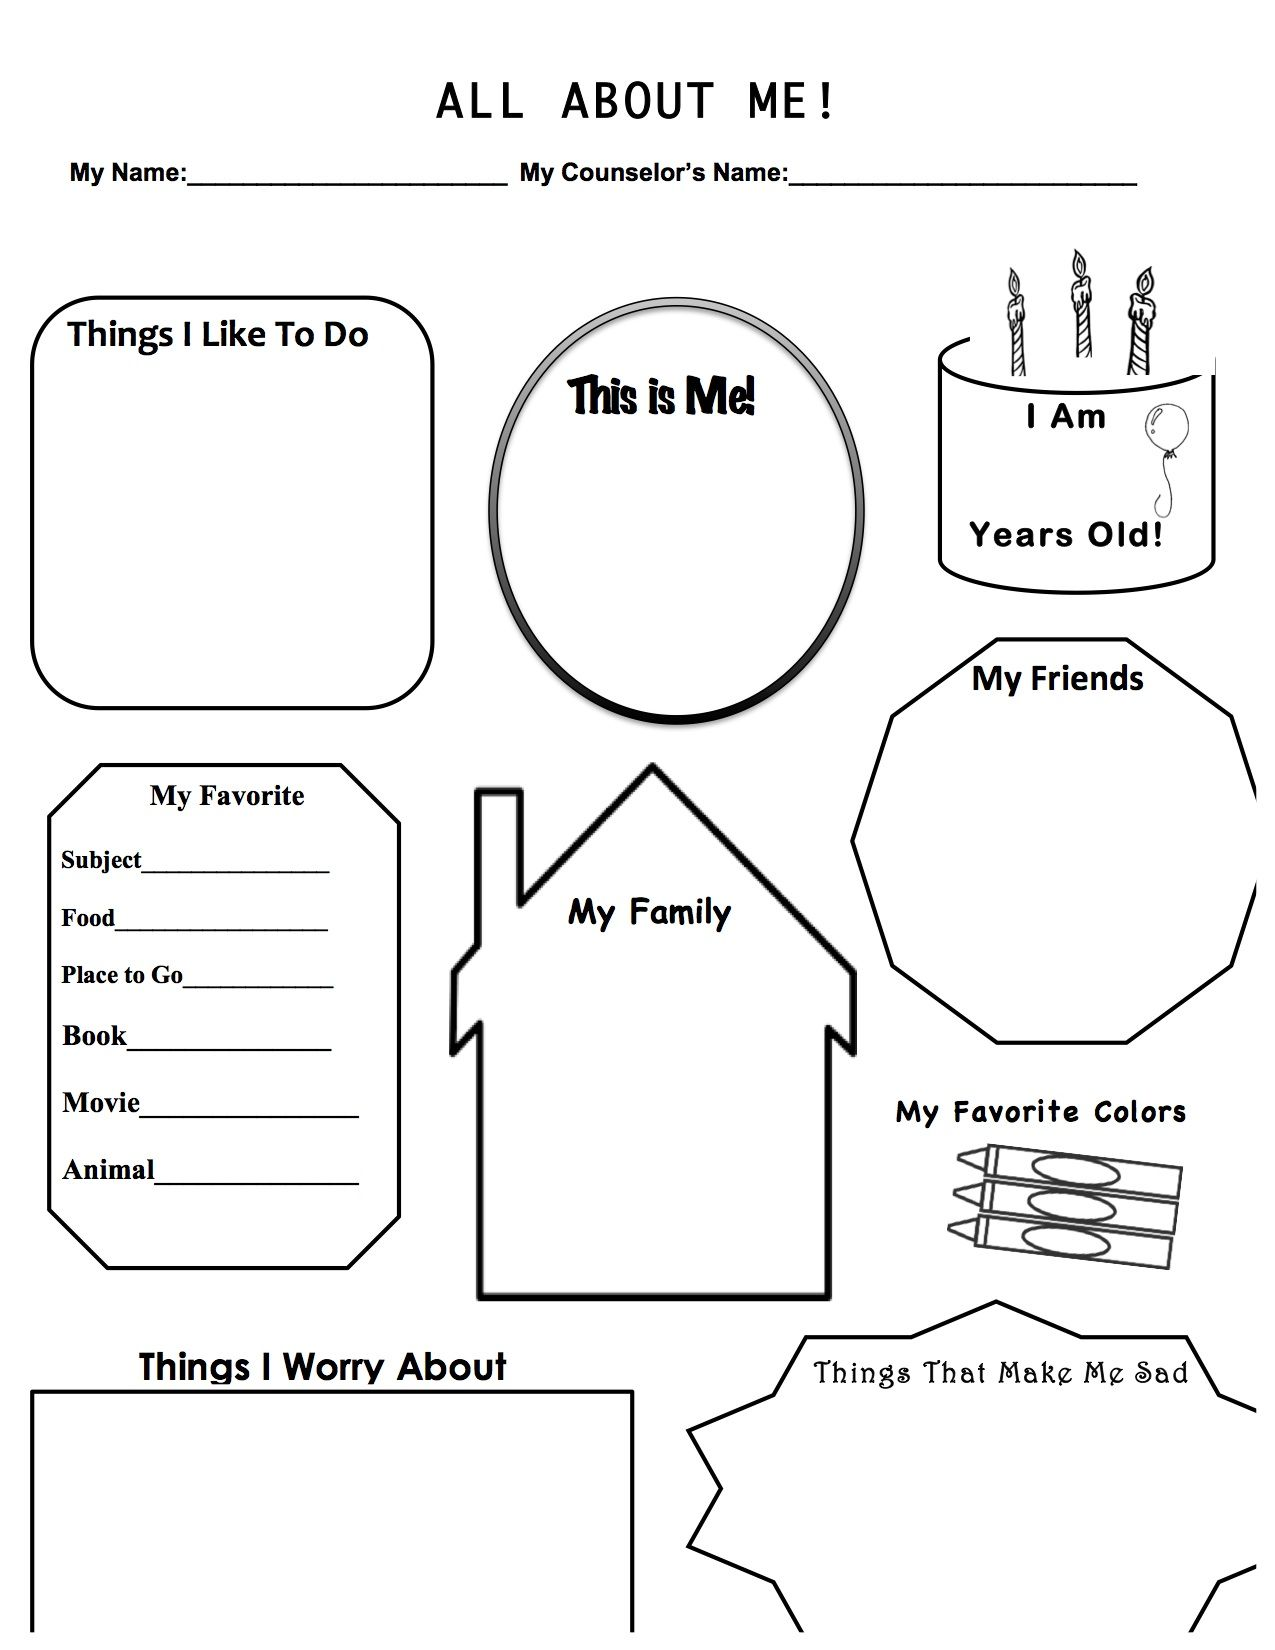 This Is A Work Sheet I Designed For When I Have A First